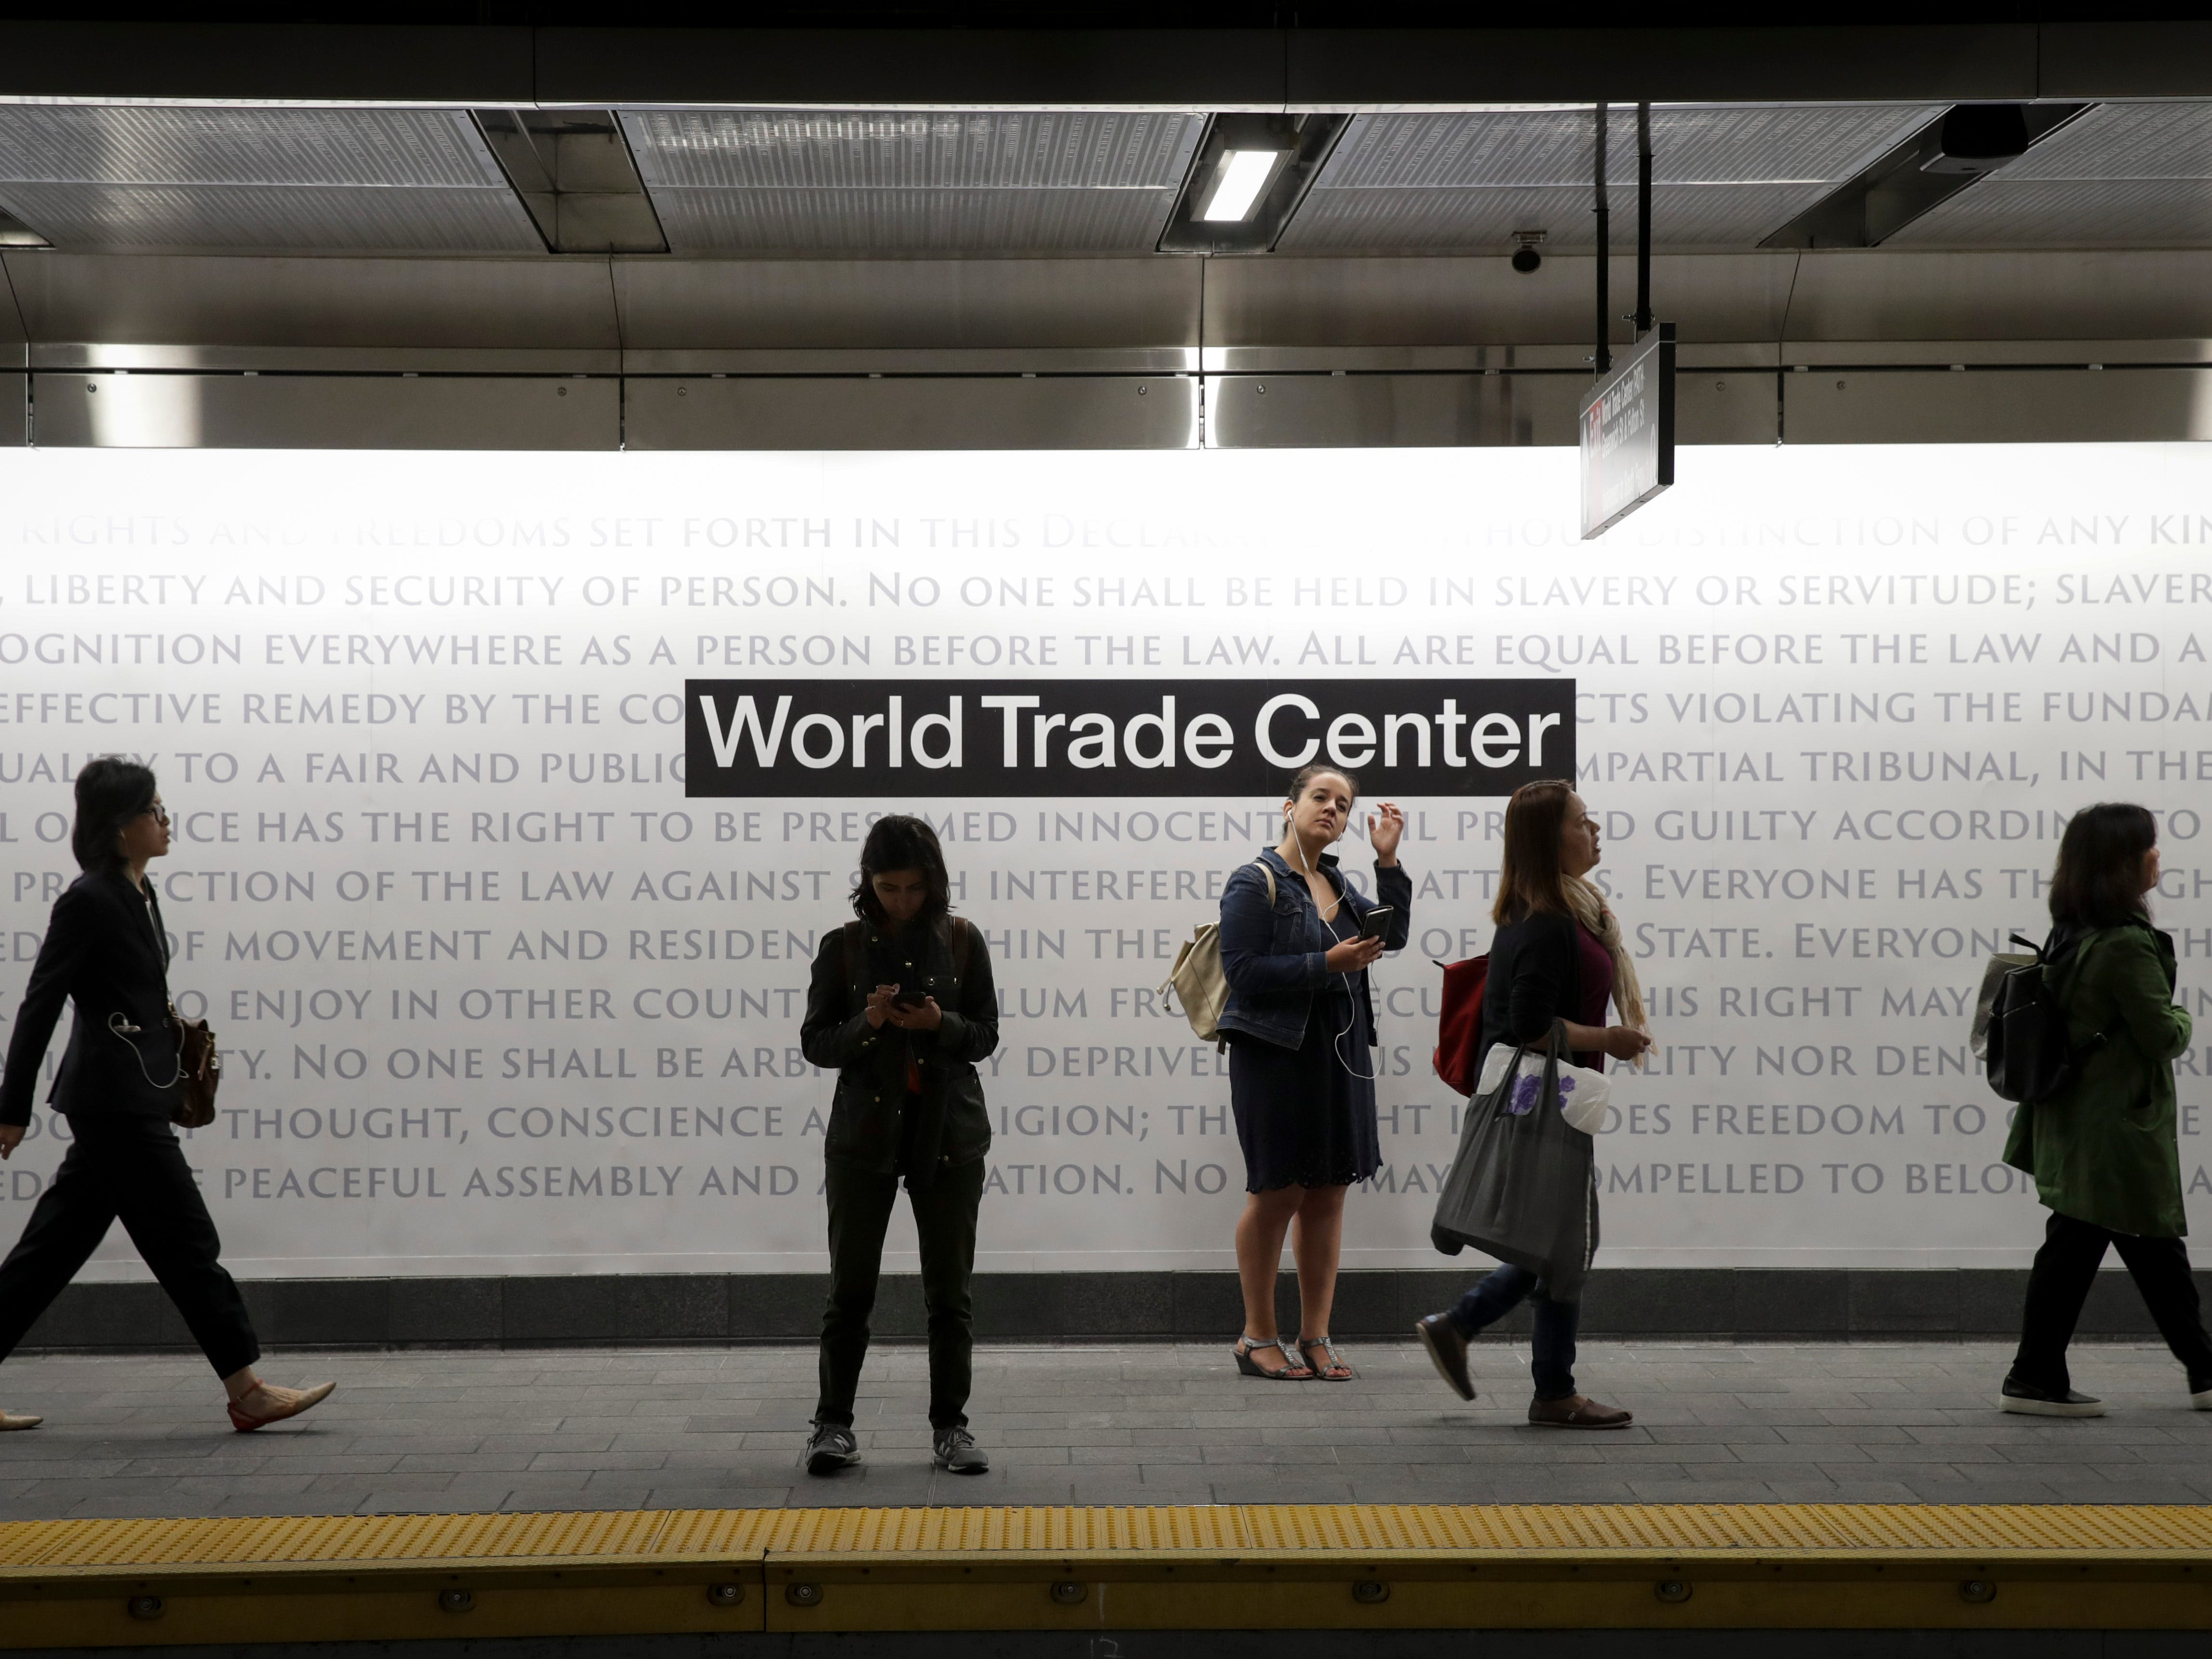 People wait for a train on the platform at the newly opened Cortland Street 1 train station September 10, 2018, in New York City. The train station was buried in debris following the 9/11 terrorist attacks and had been closed since that day 17 years ago.